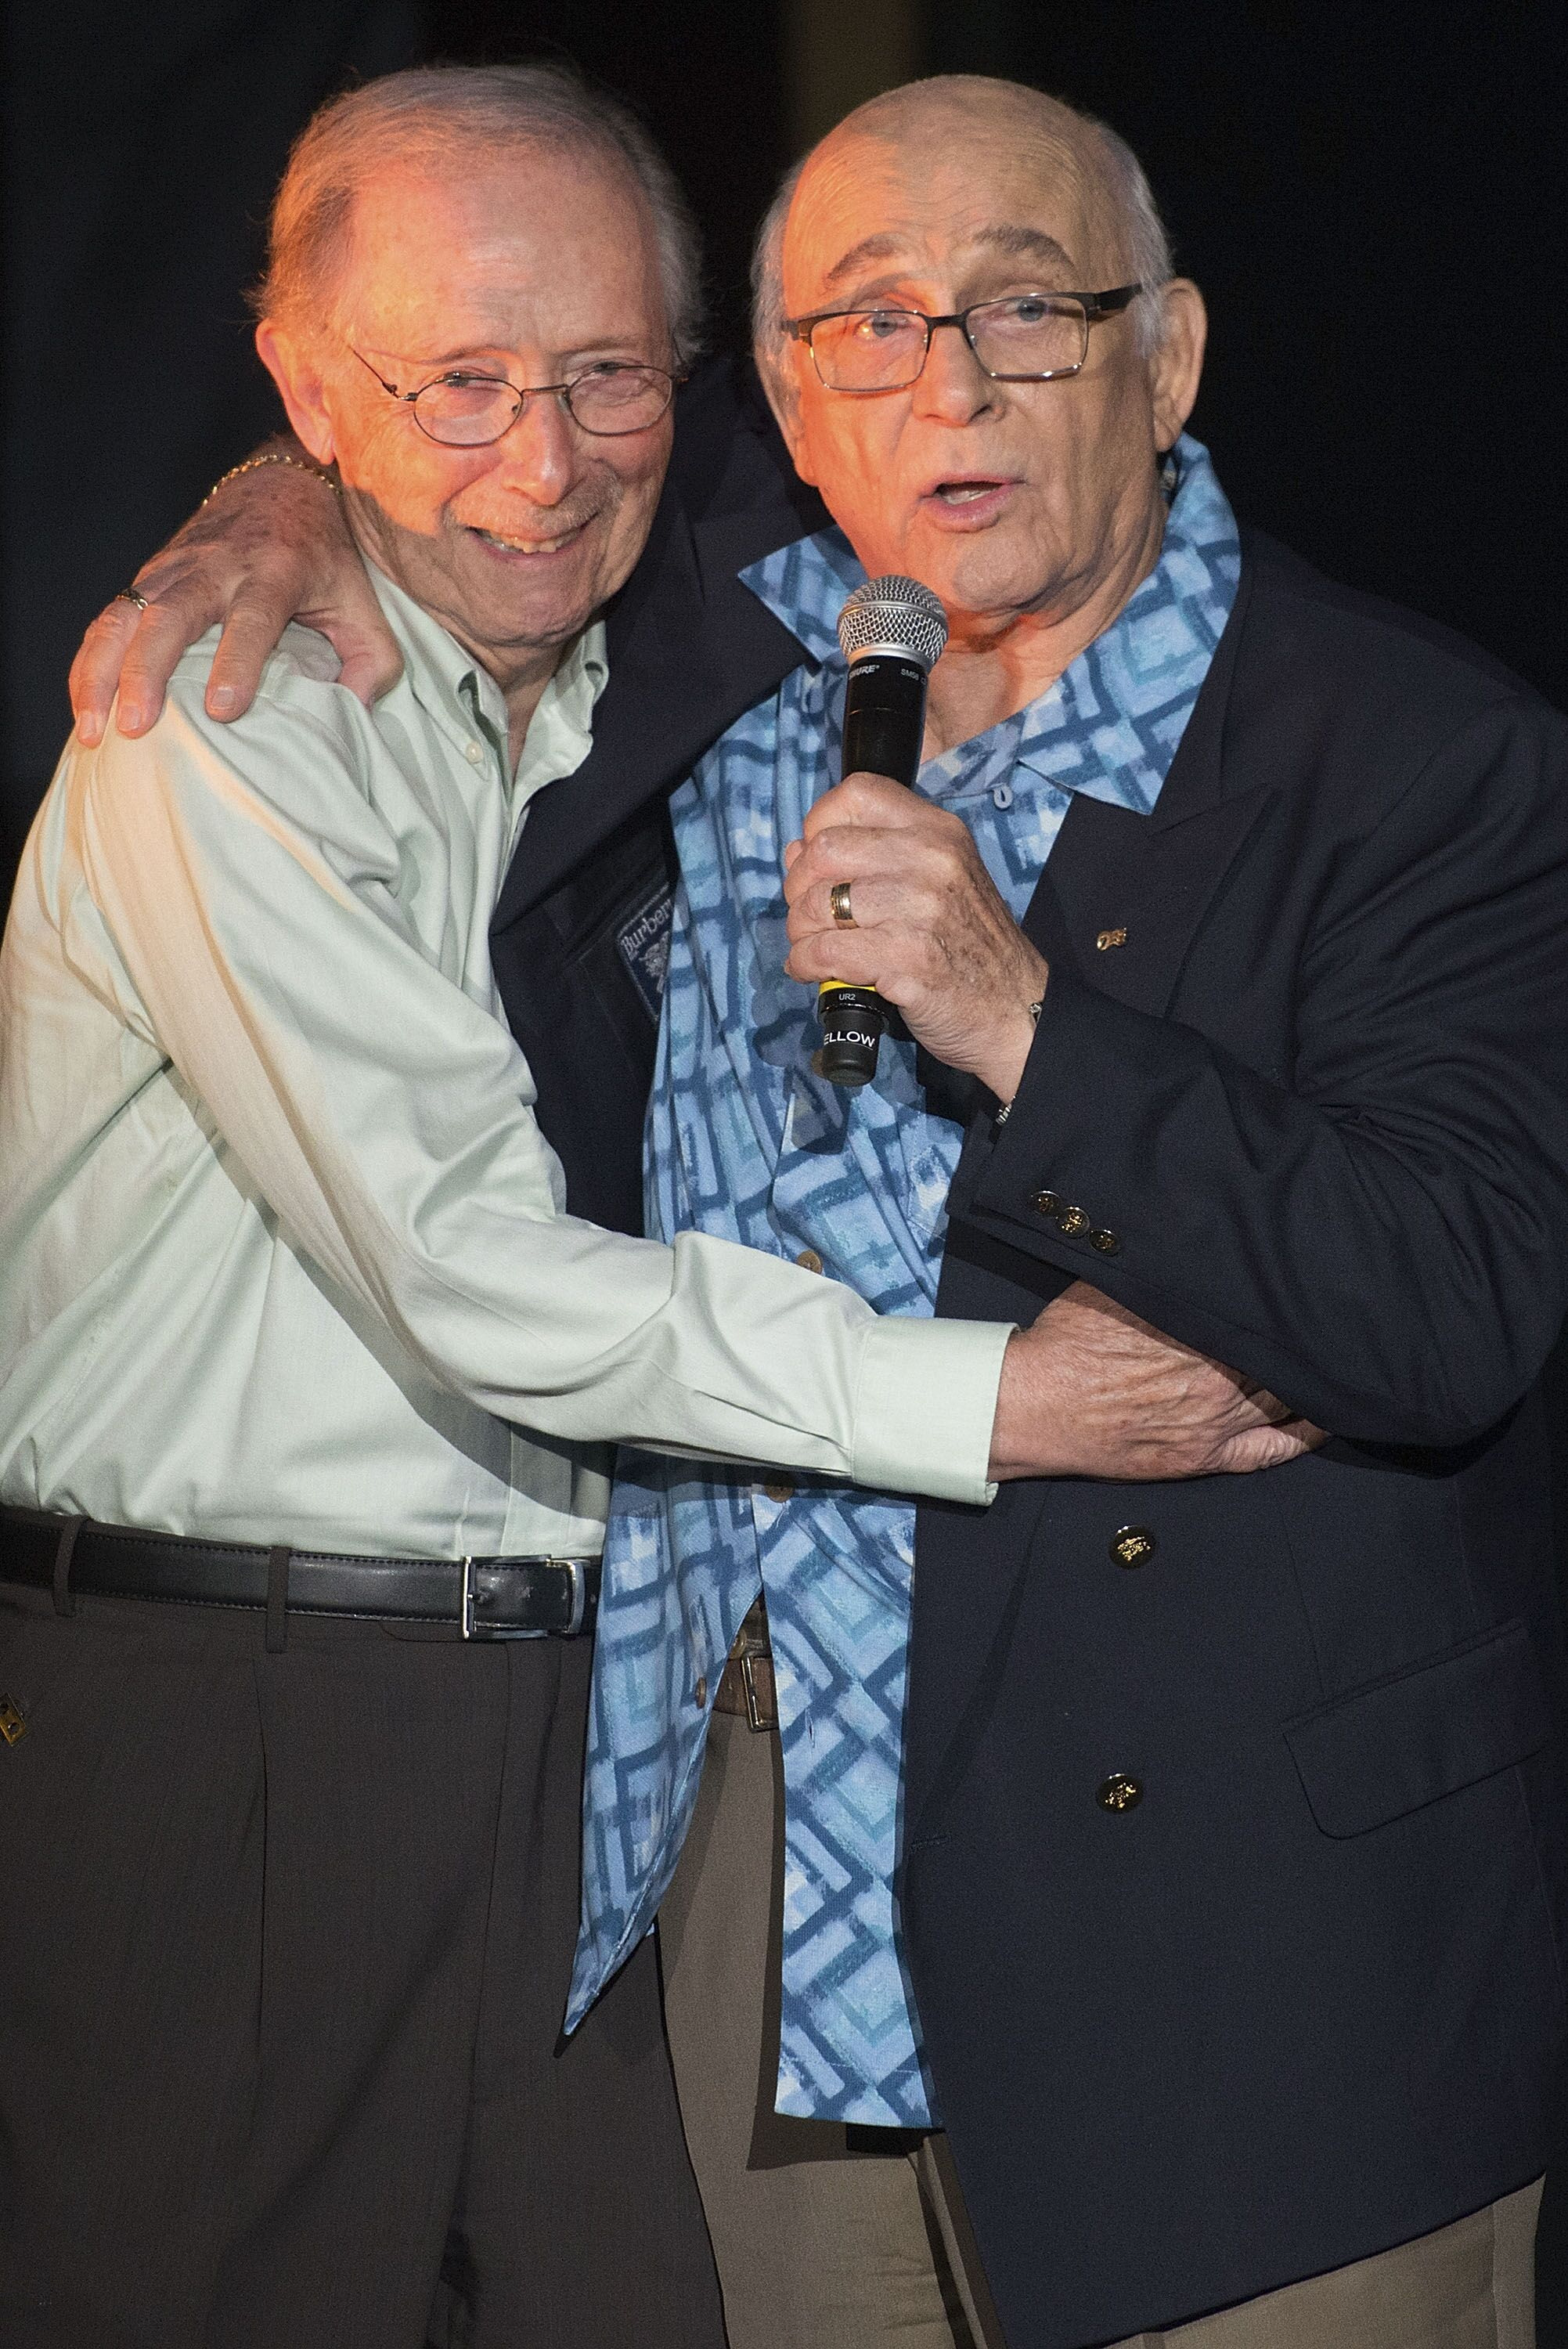 Bernie Koppell and Gavin MacLeod attend Stephen Schwartz's Magic To Do Premiere. | Source: Getty Images